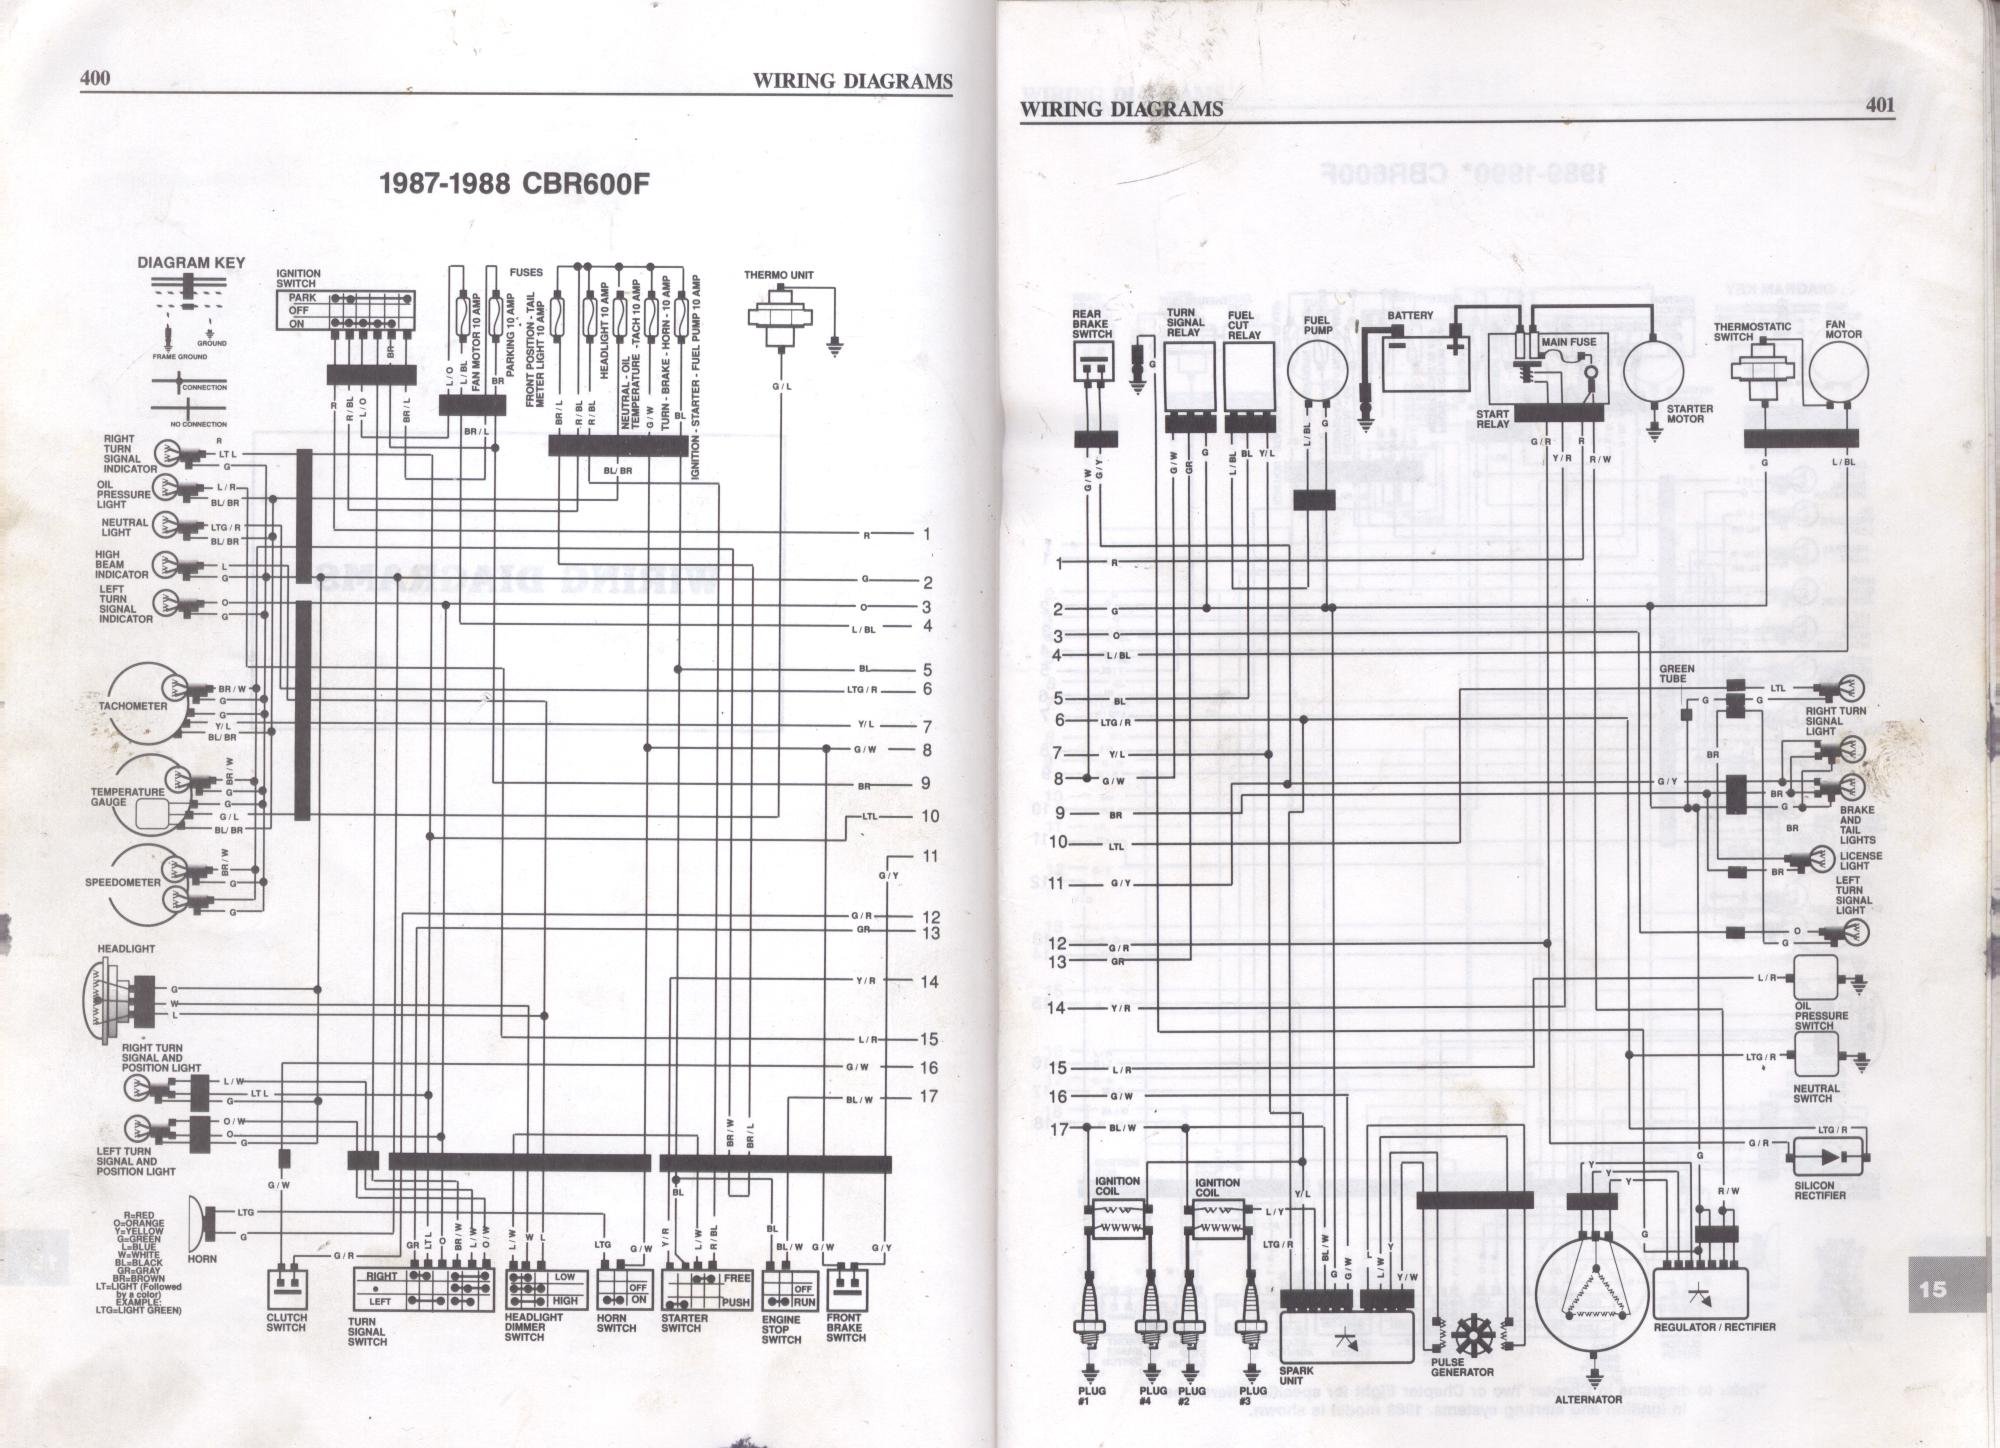 Excellent cbr 600 wiring diagram charger gallery electrical and nice honda cbr 600 wiring diagram photos electrical circuit sciox Images